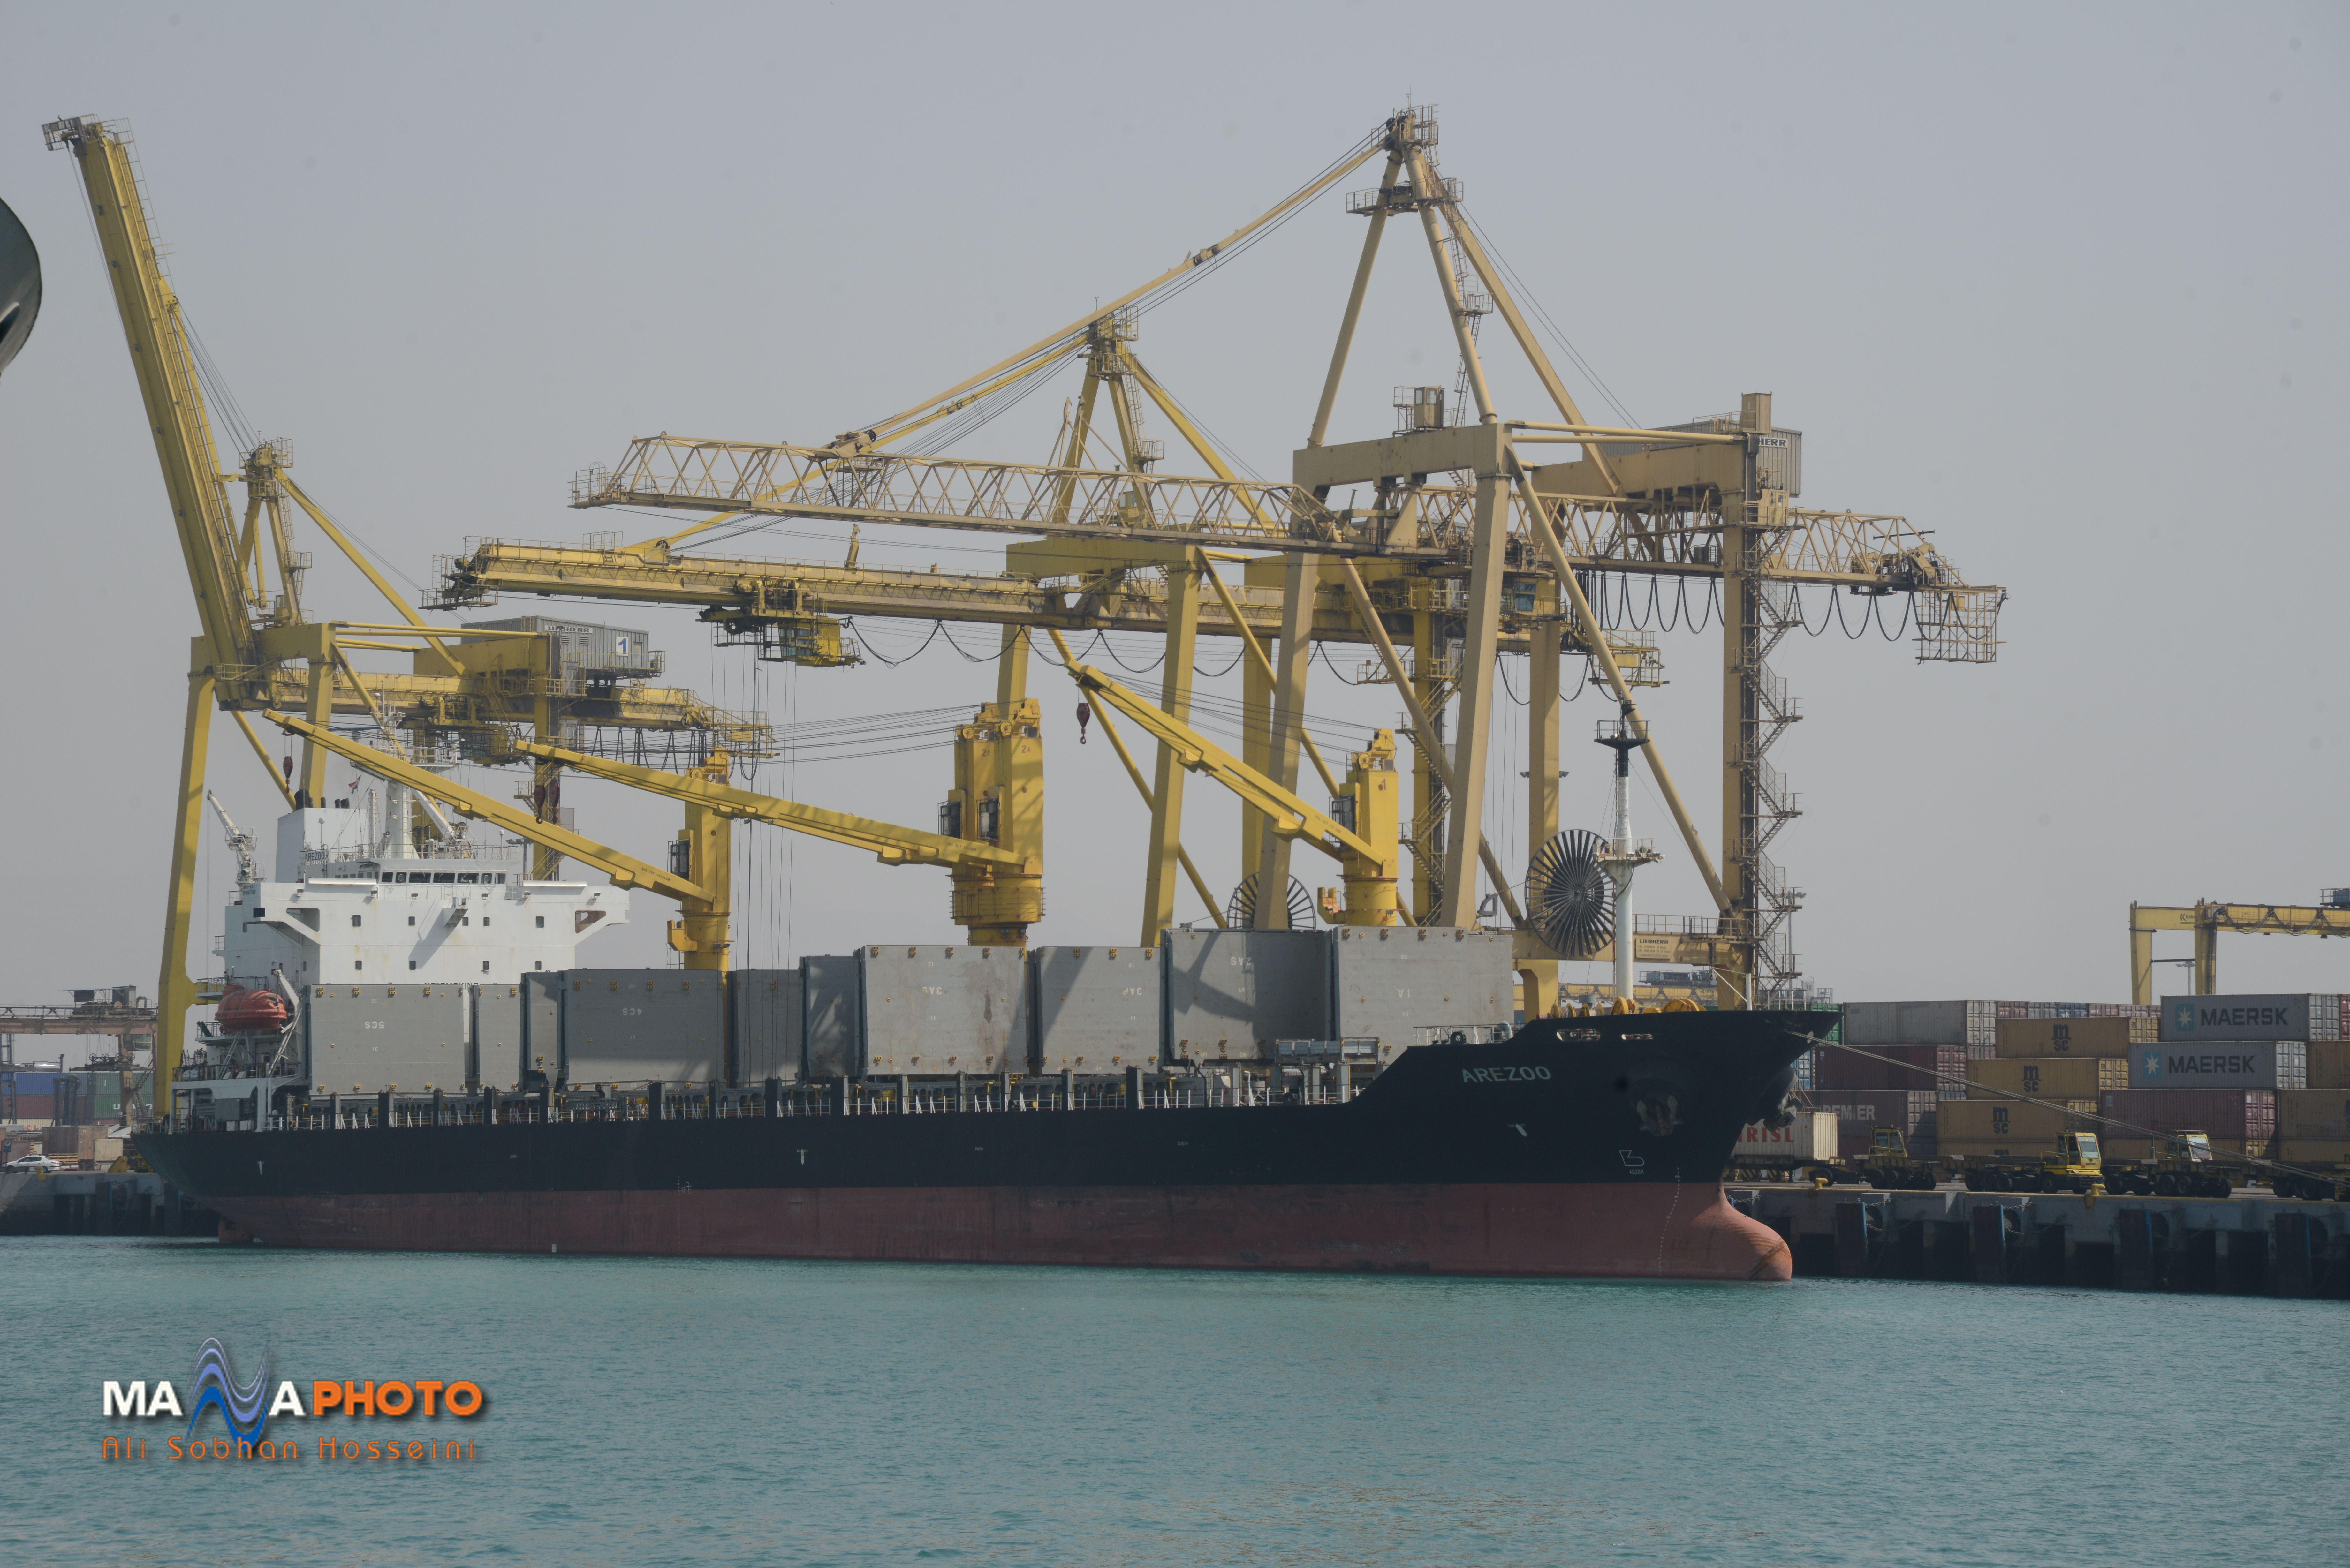 Shahid Rajaee port in picture frame